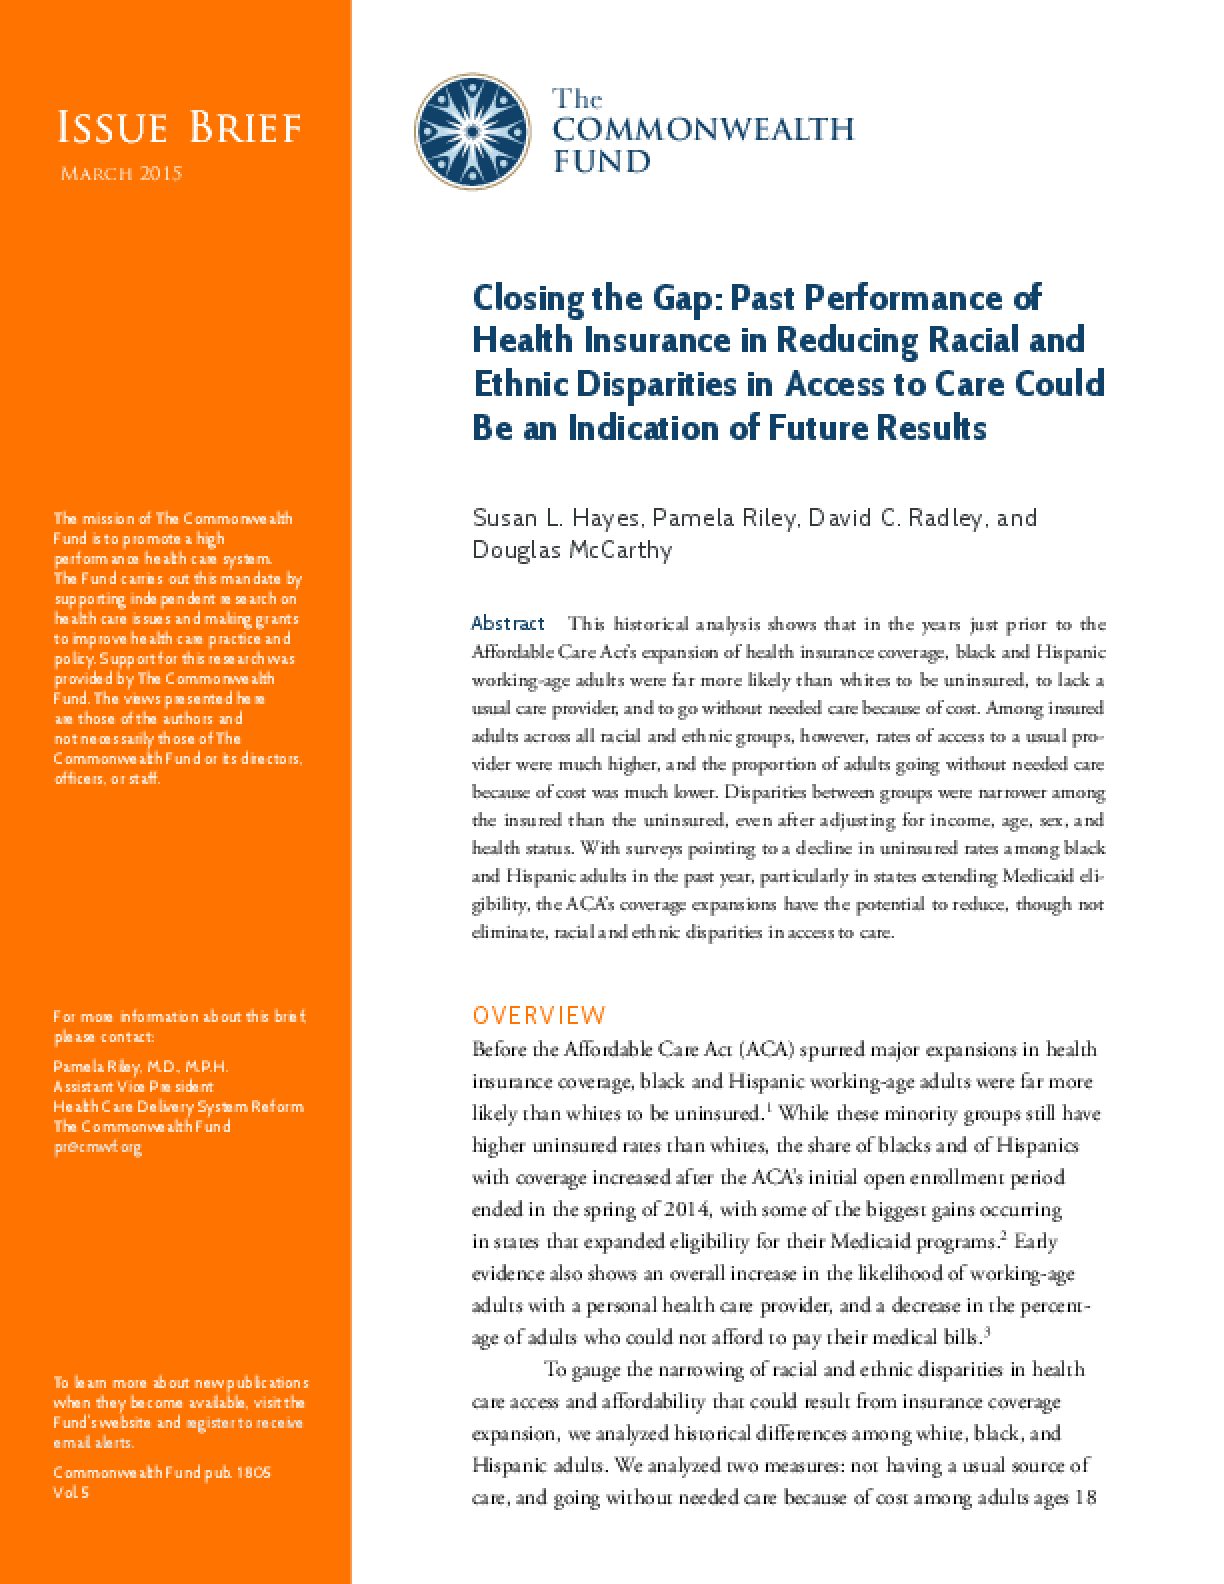 Closing the Gap: Past Performance of Health Insurance in Reducing Racial and Ethnic Disparities in Access to Care Could Be an Indication of Future Results